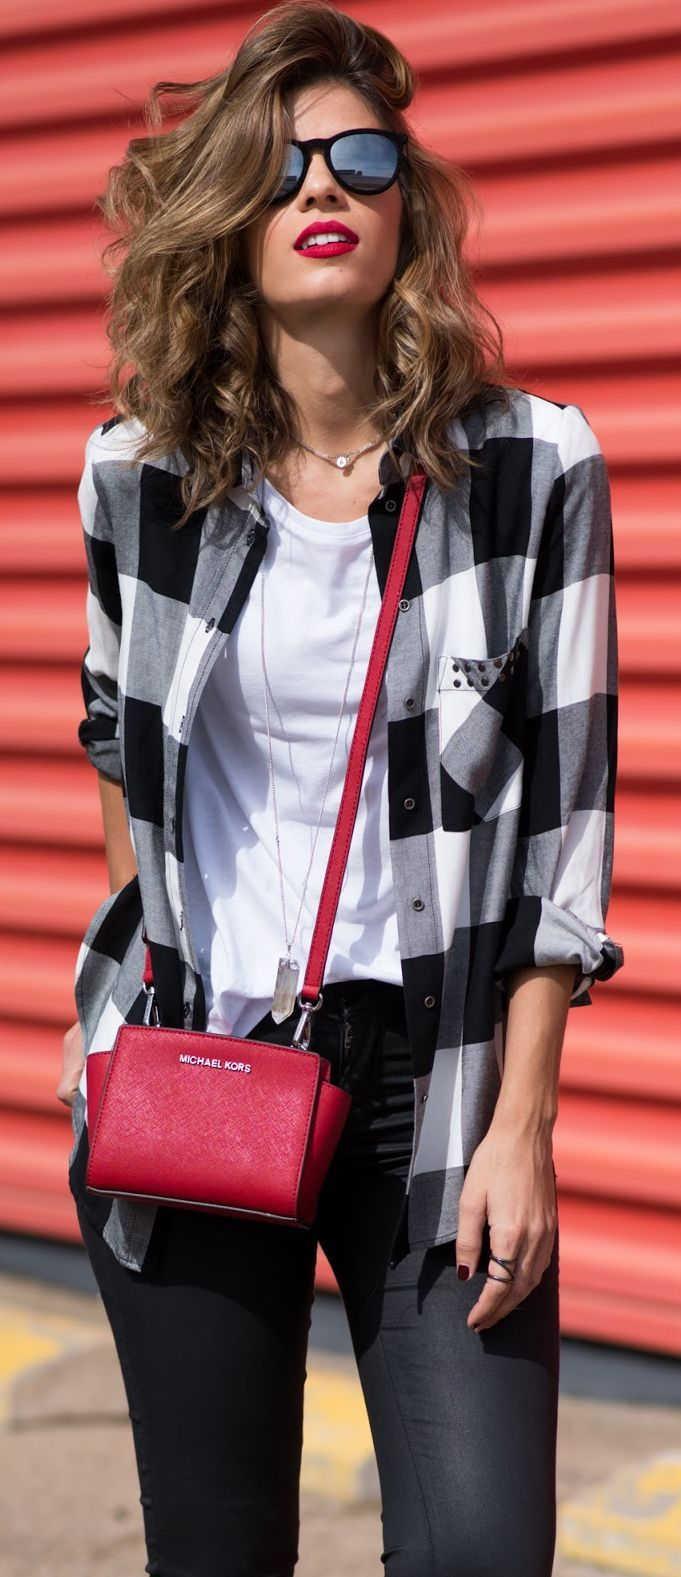 Checkered Button-up Fall Inspo by Fall autumn women fashion outfit clothing stylish apparel @roressclothes closet ideas